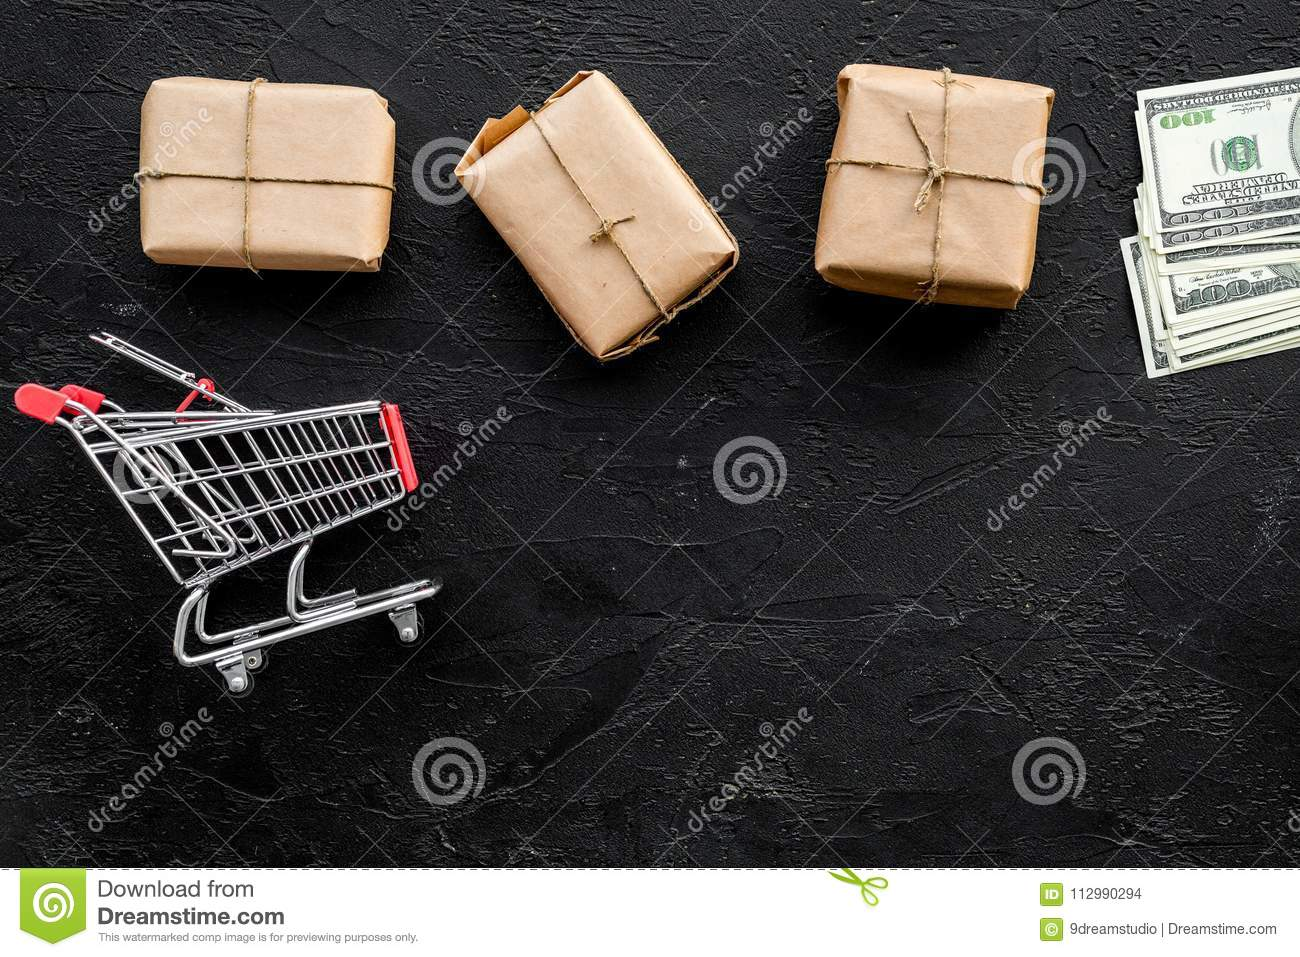 Courier workplace with cardboard box and trolley for delivery on black background top view mockup